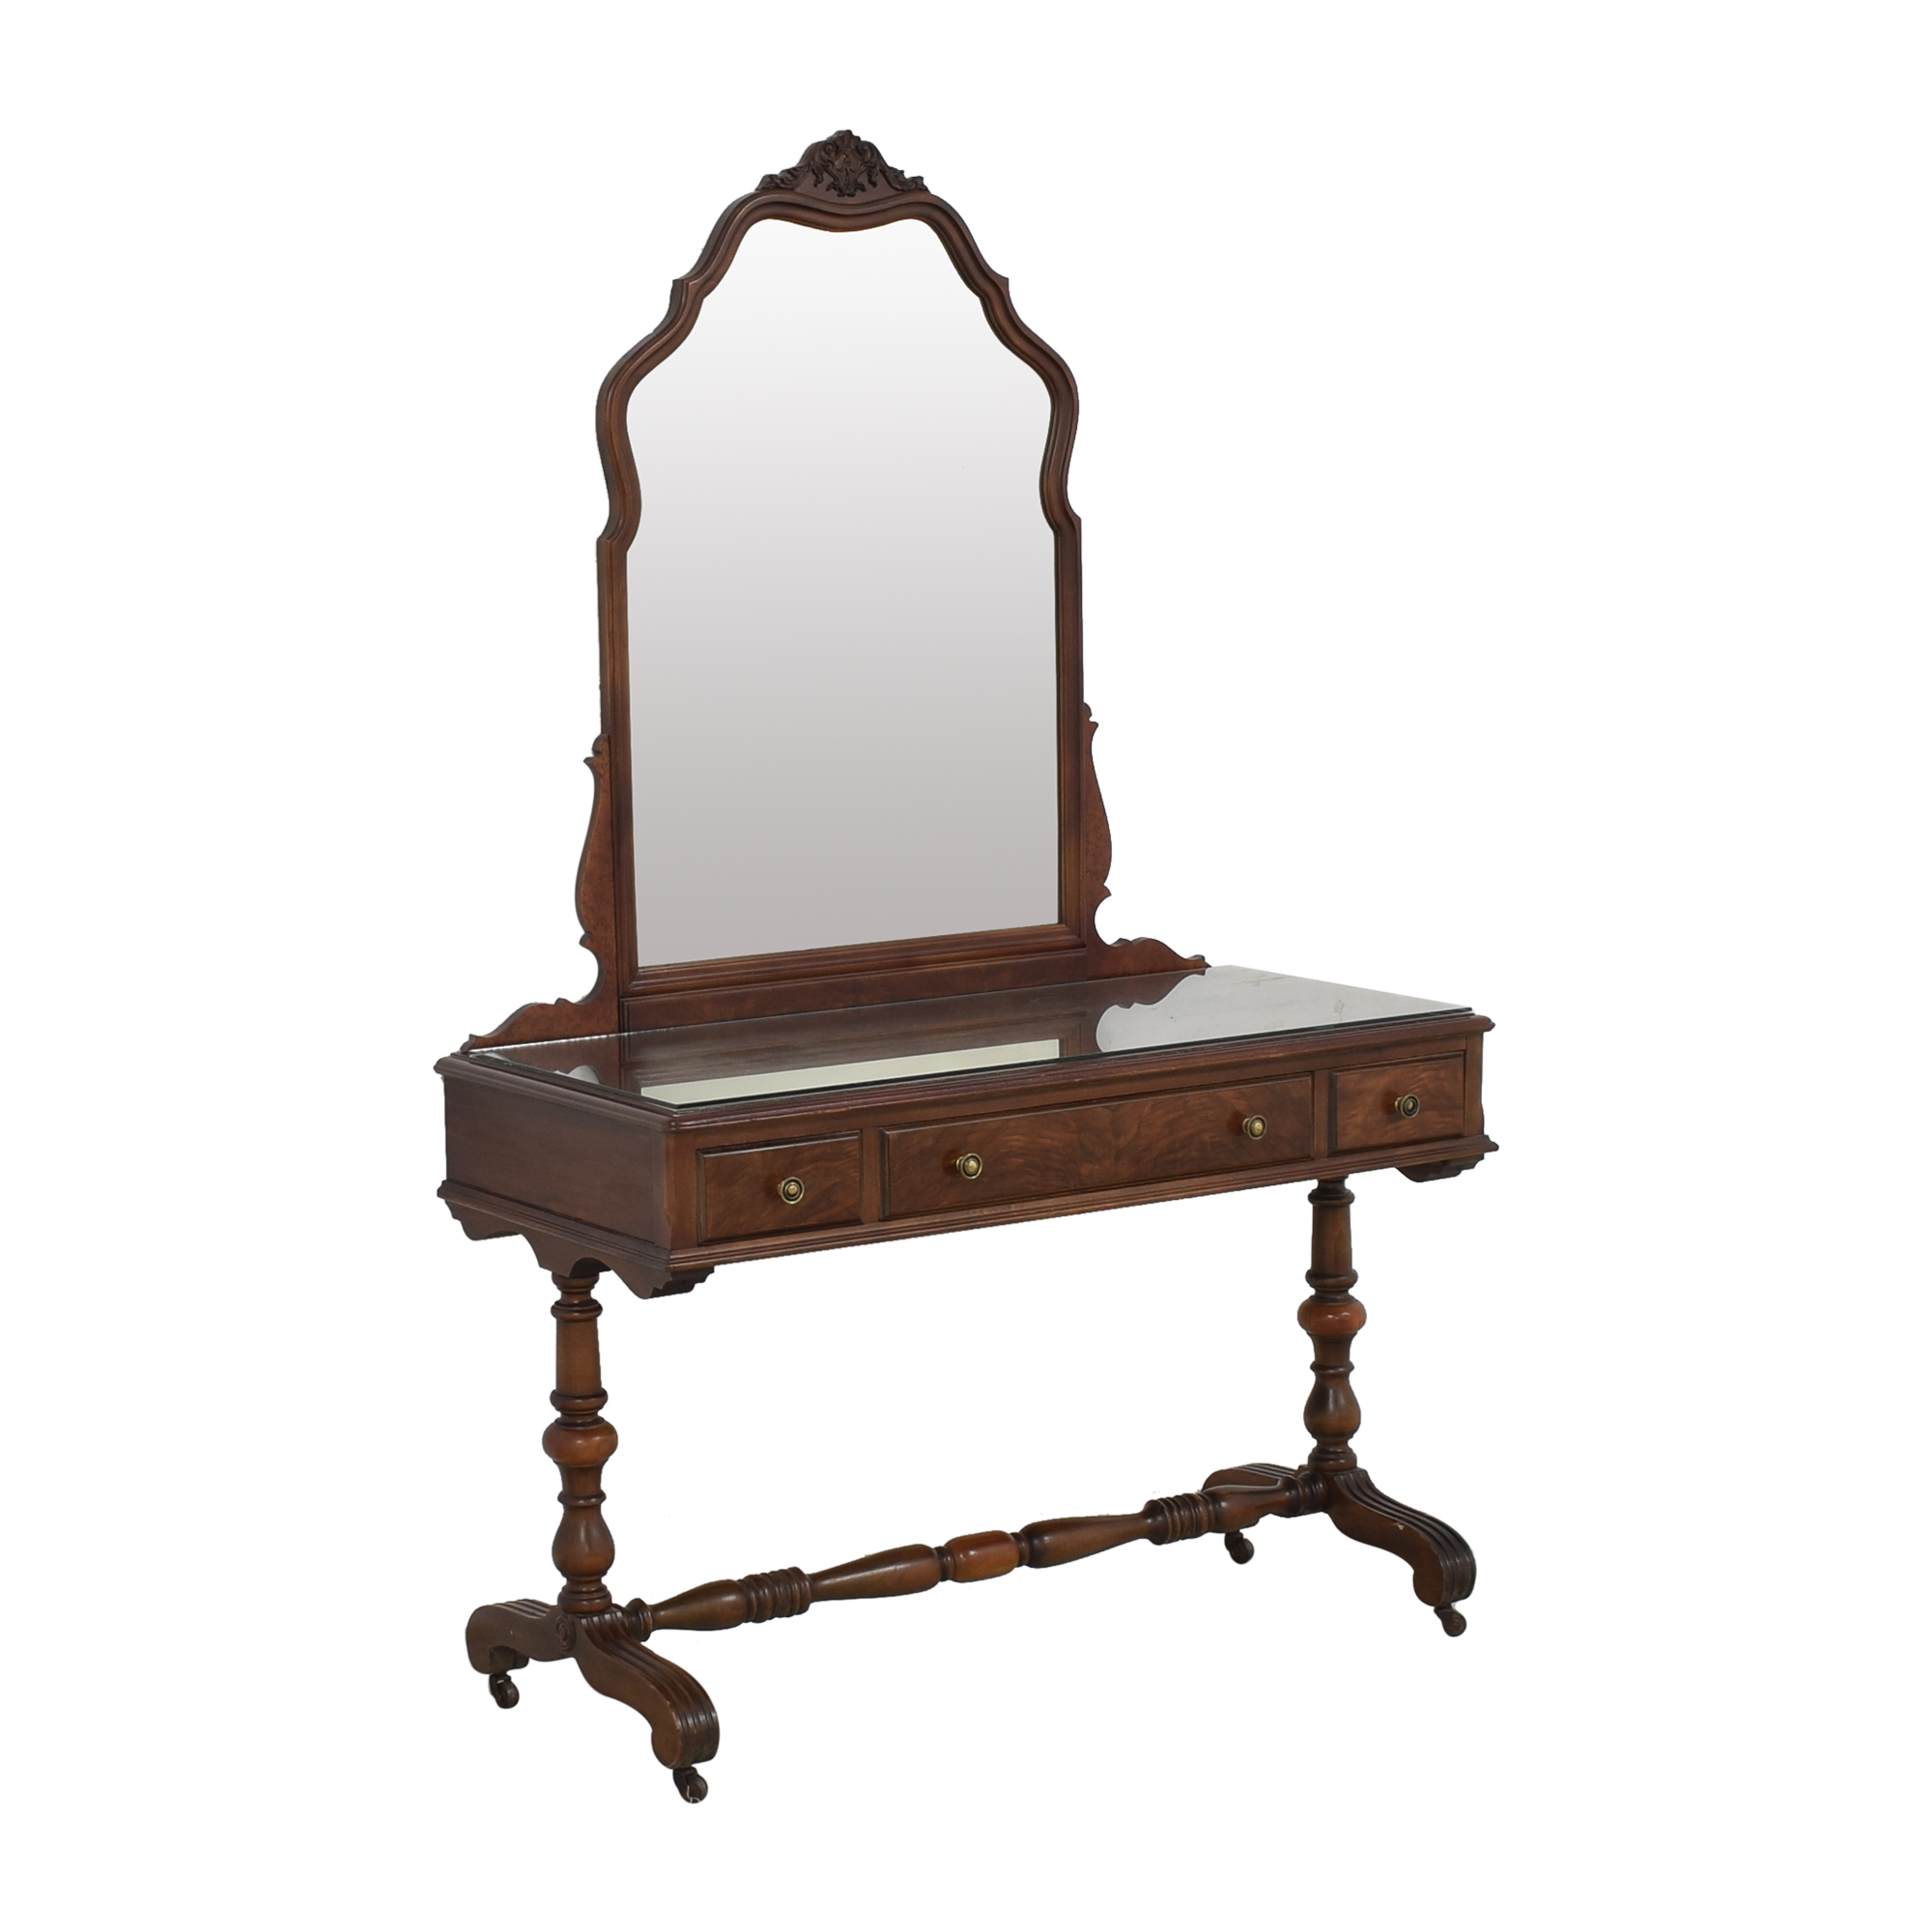 Rishel Company Vanity with Removable Mirror sale